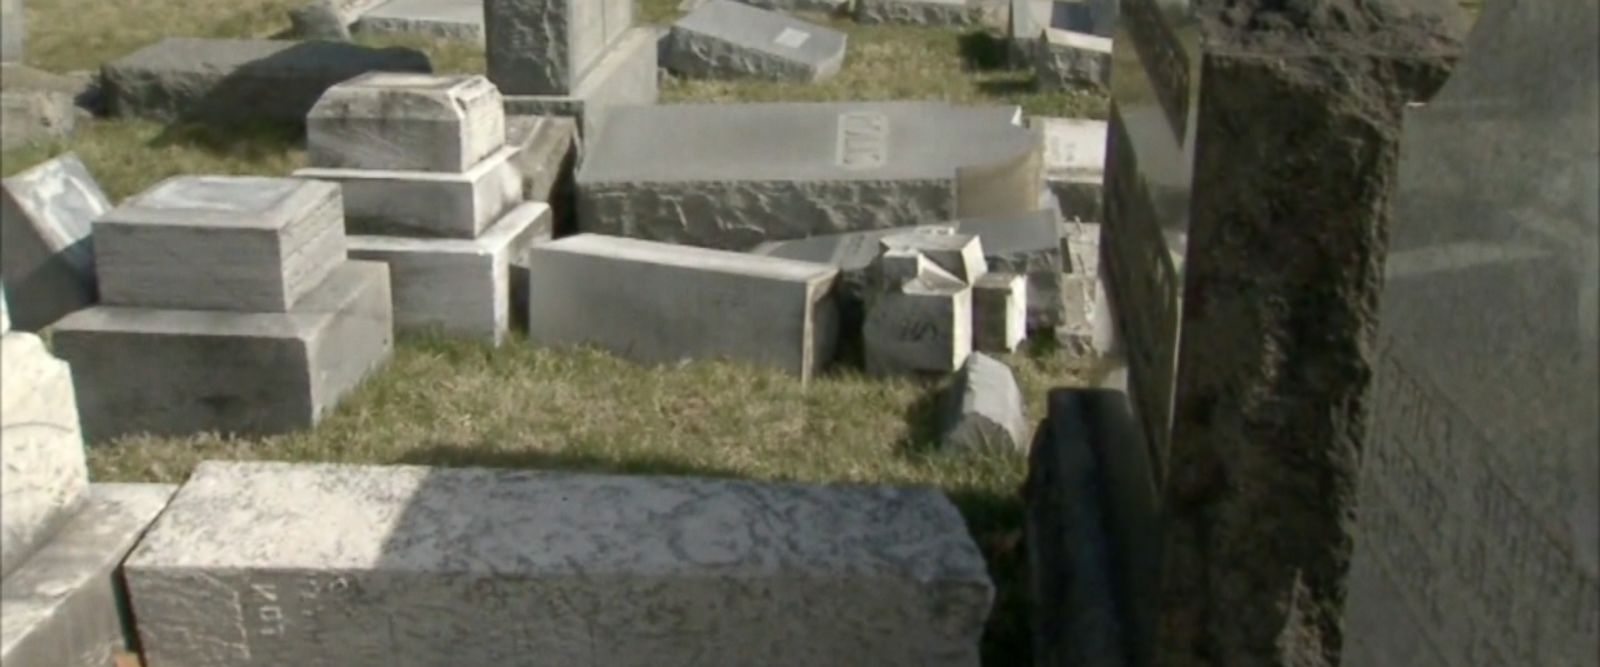 VIDEO: Volunteers cleaning up the damage say hundreds of headstones were vandalized at the Mount Carmel Cemetery.